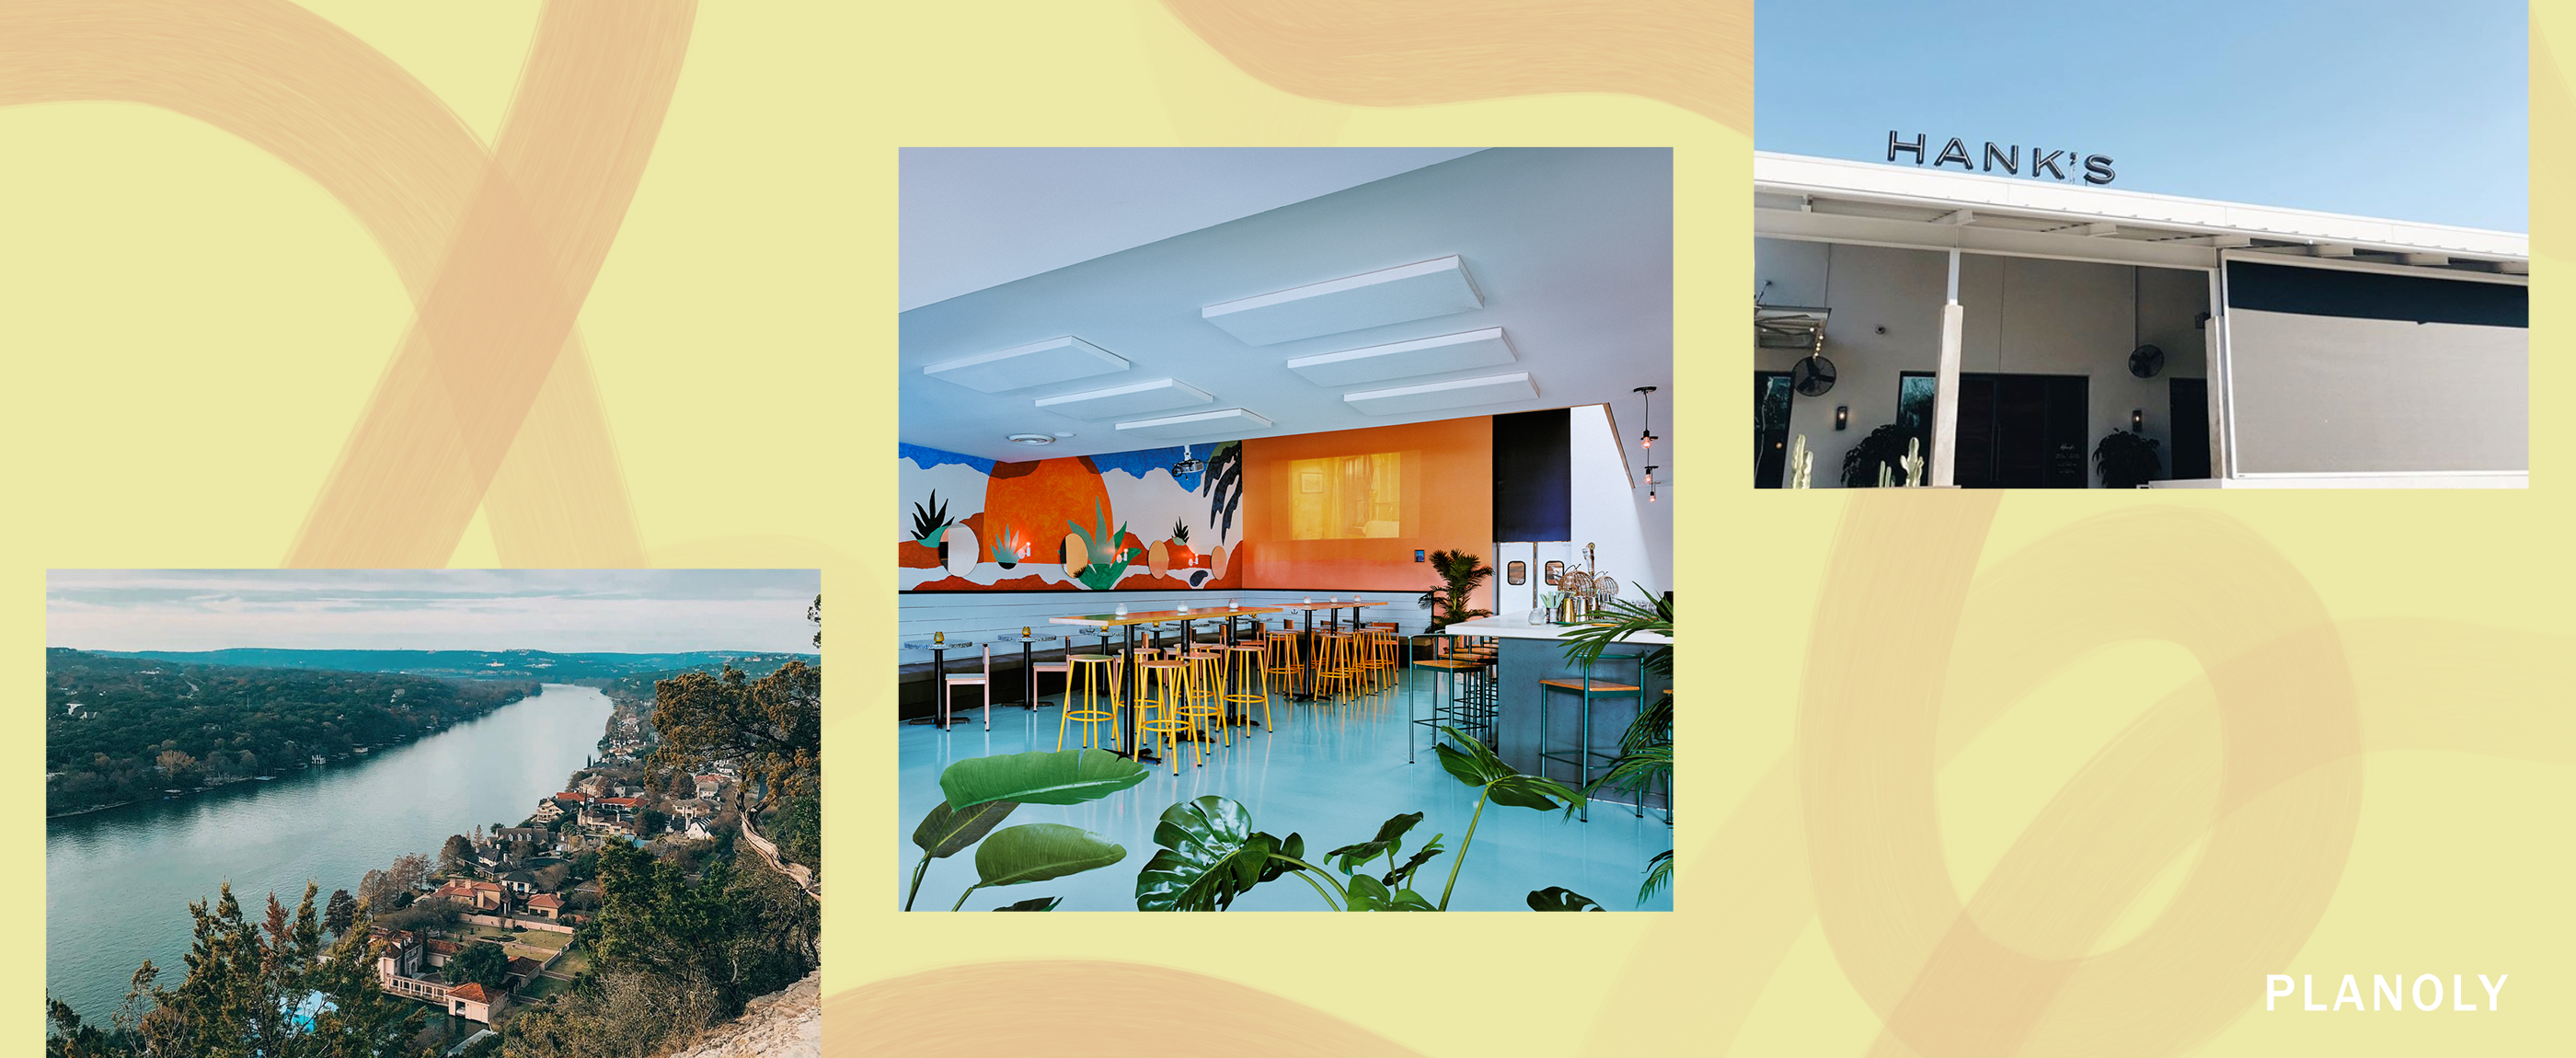 SXSW: Top Spots to Shoot Content in Austin